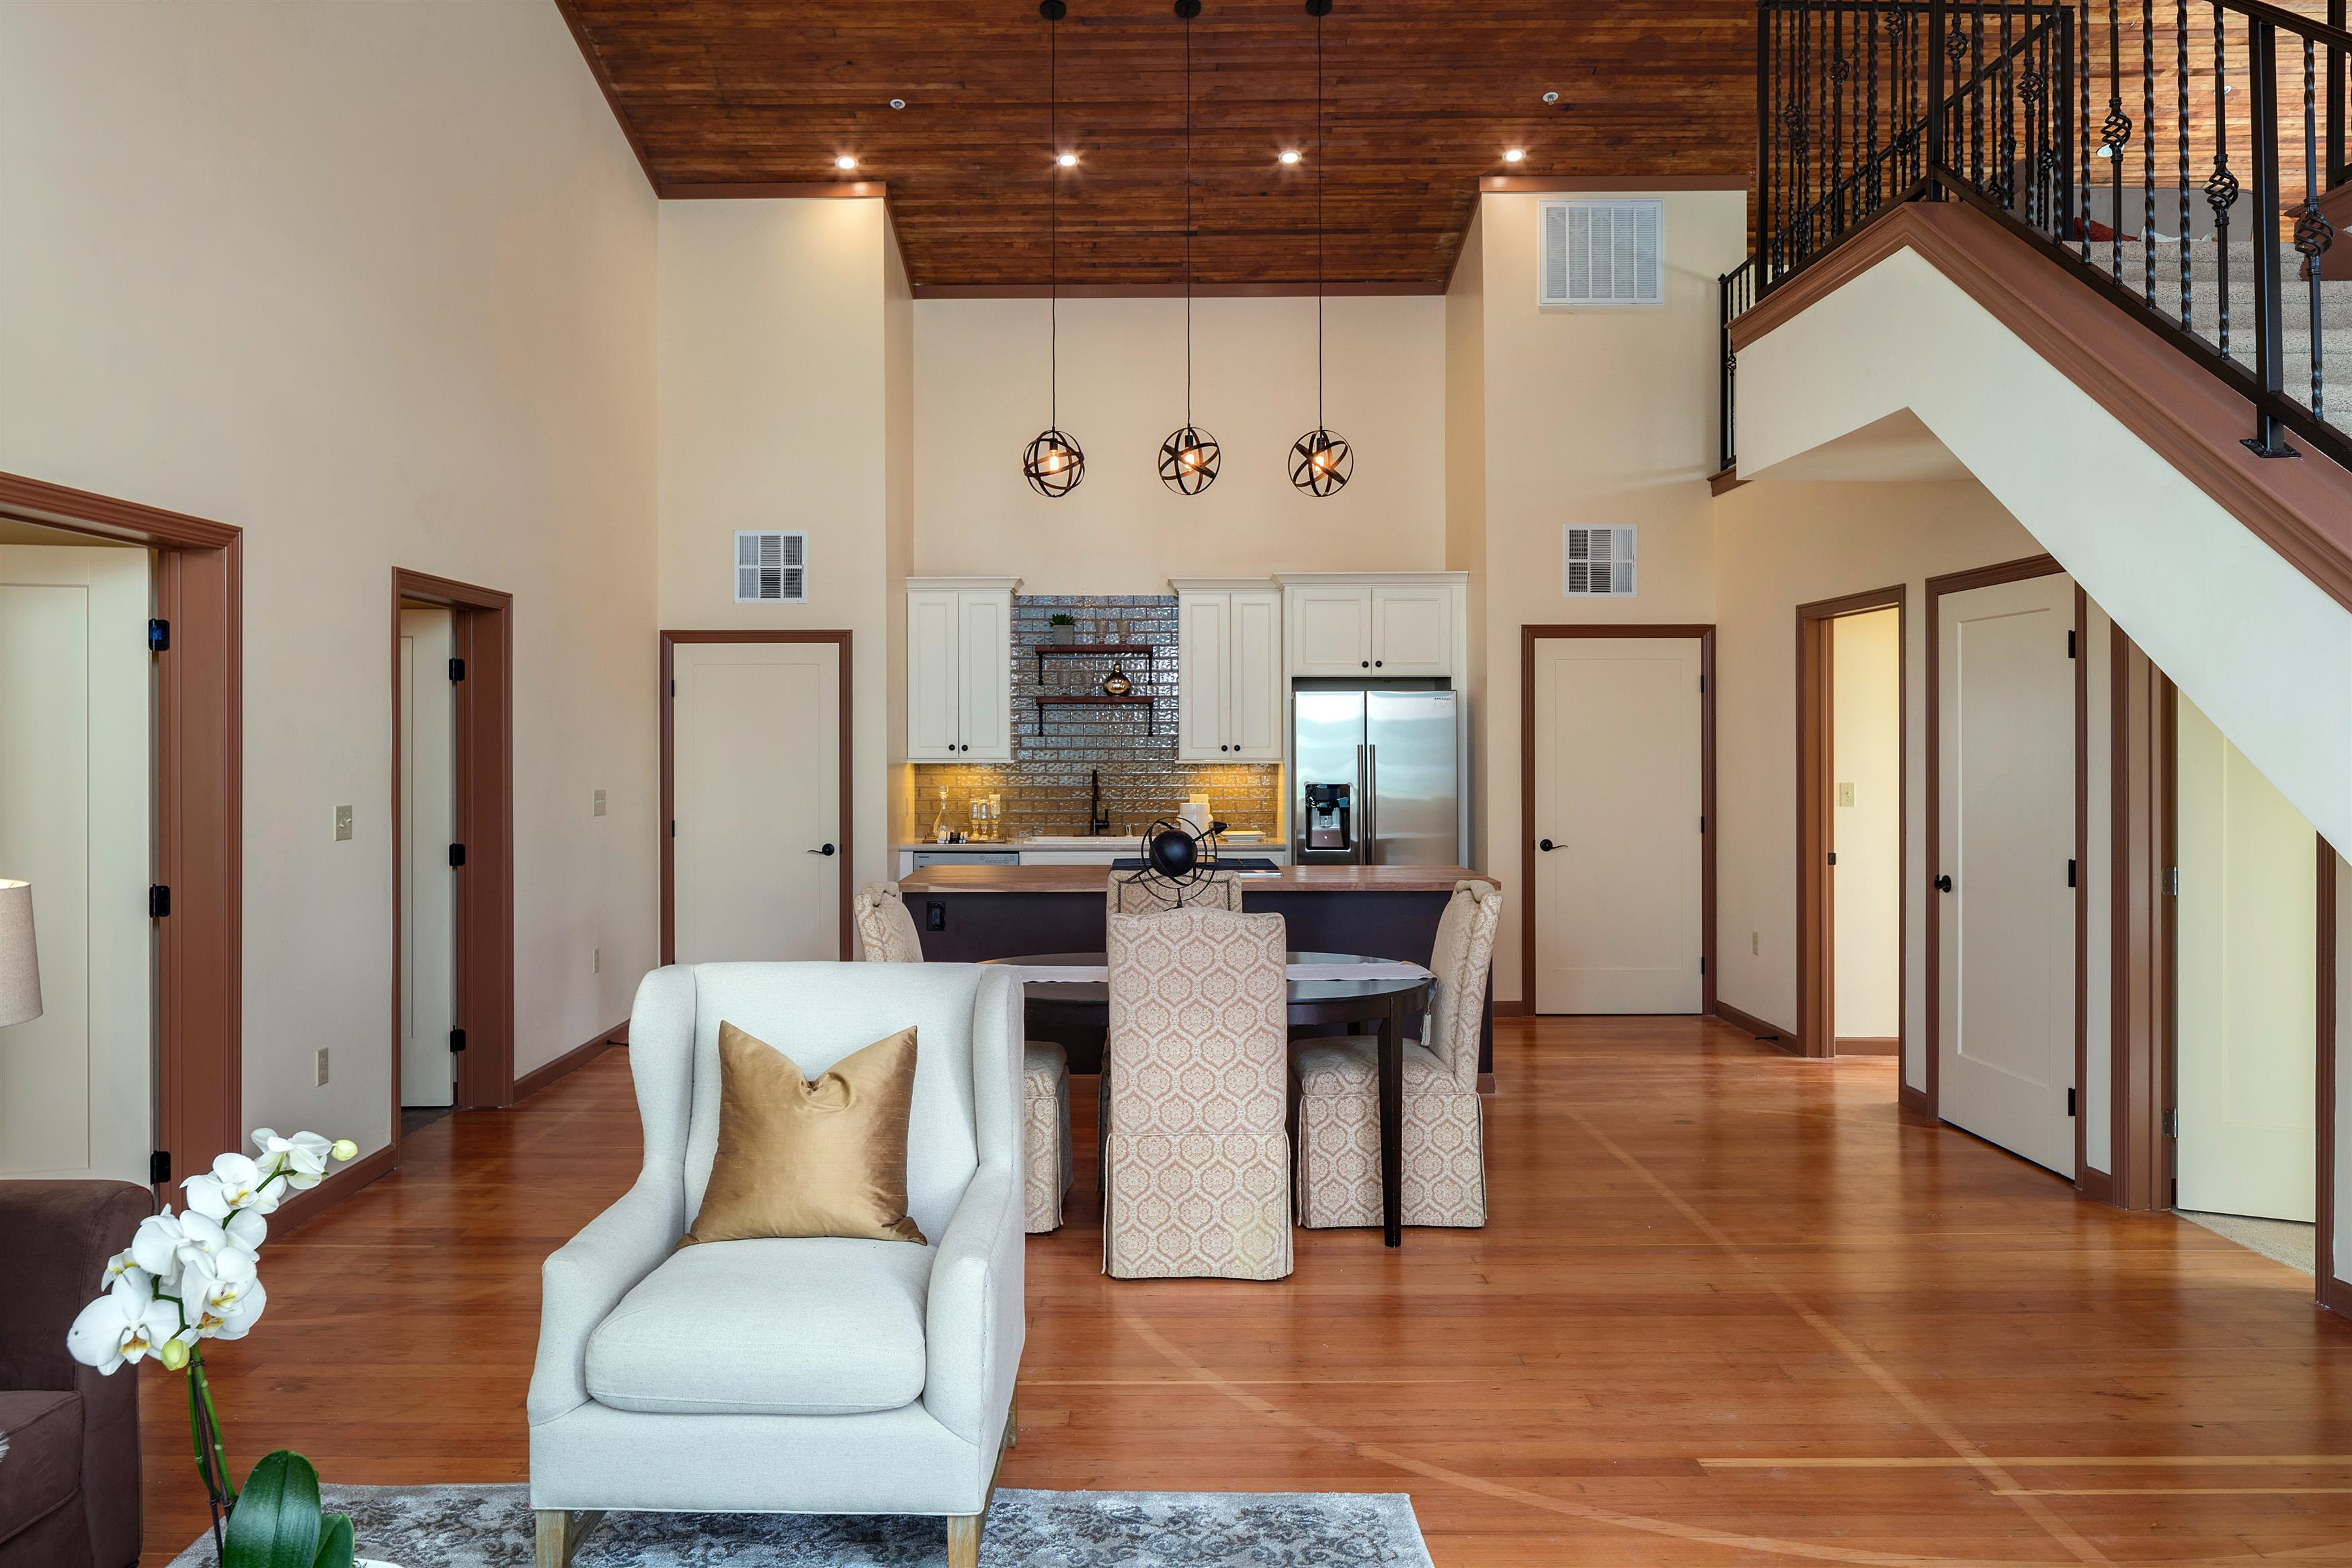 sales property at The Sanctuary At Shattuck: New Luxury Condos